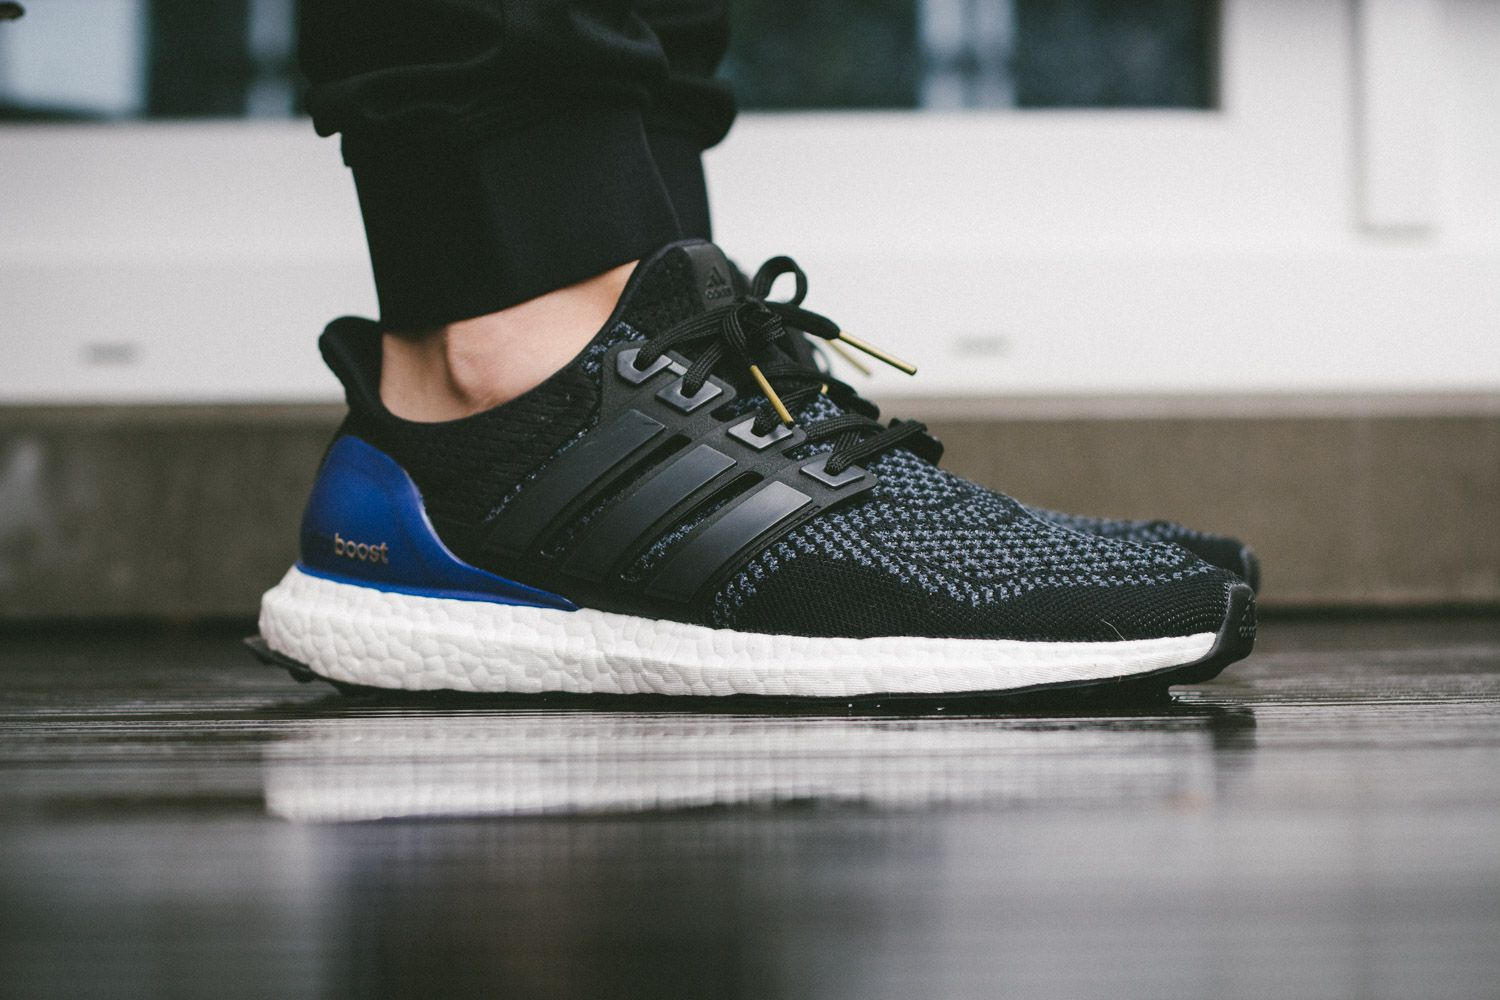 c79f7d114b42 adidas Ultra Boost – Black   Blue Review